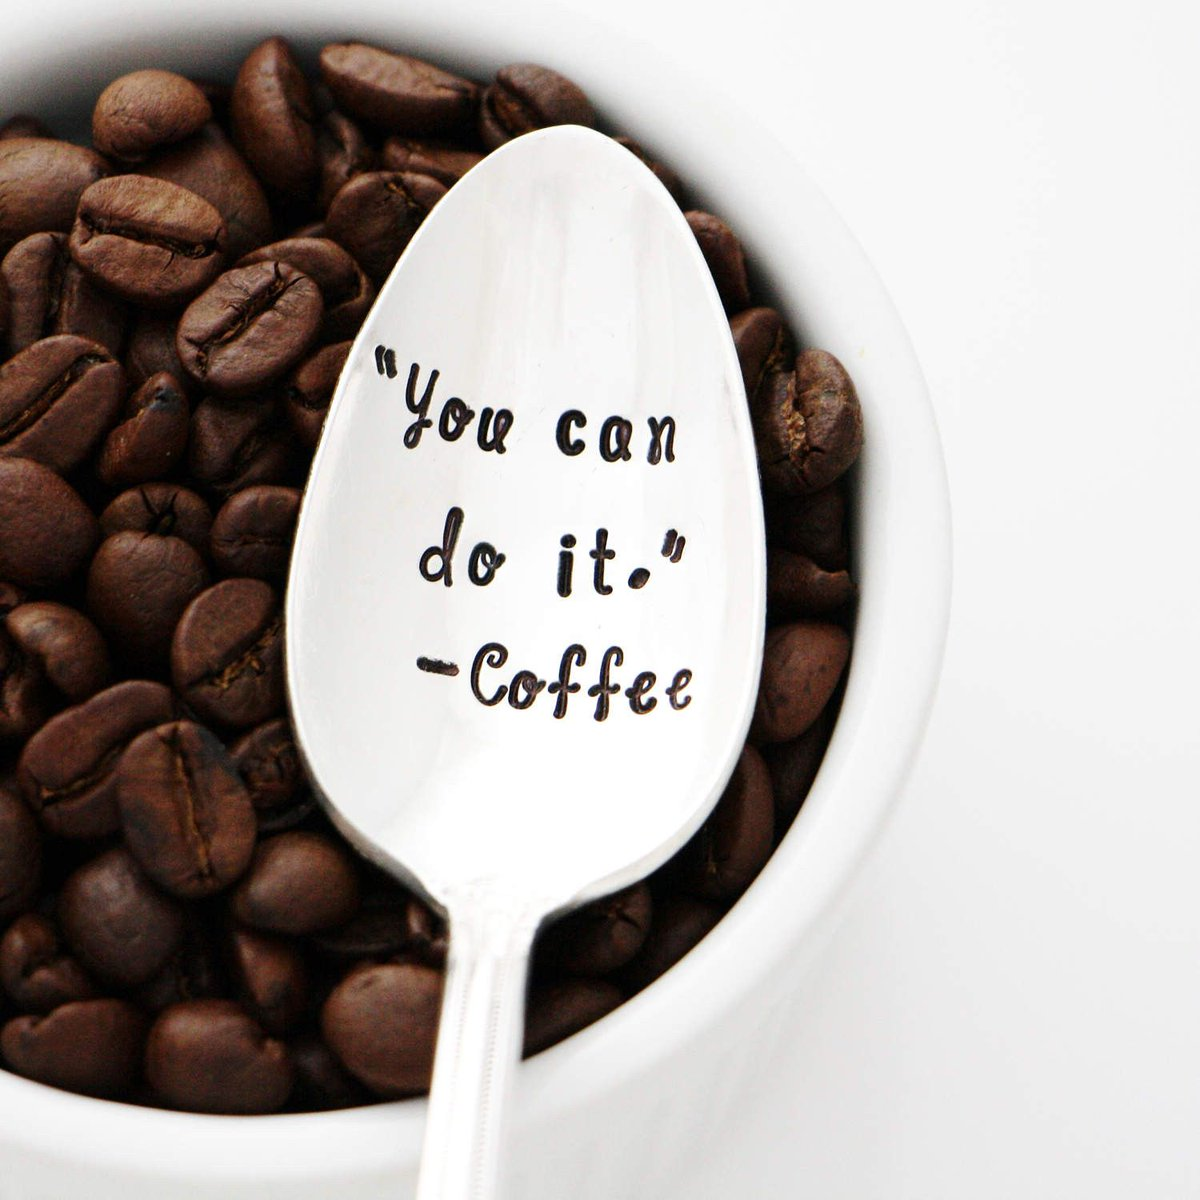 You can do anything with a little coffee #mondaymotivation https://t.co/anQ6mPyUpY